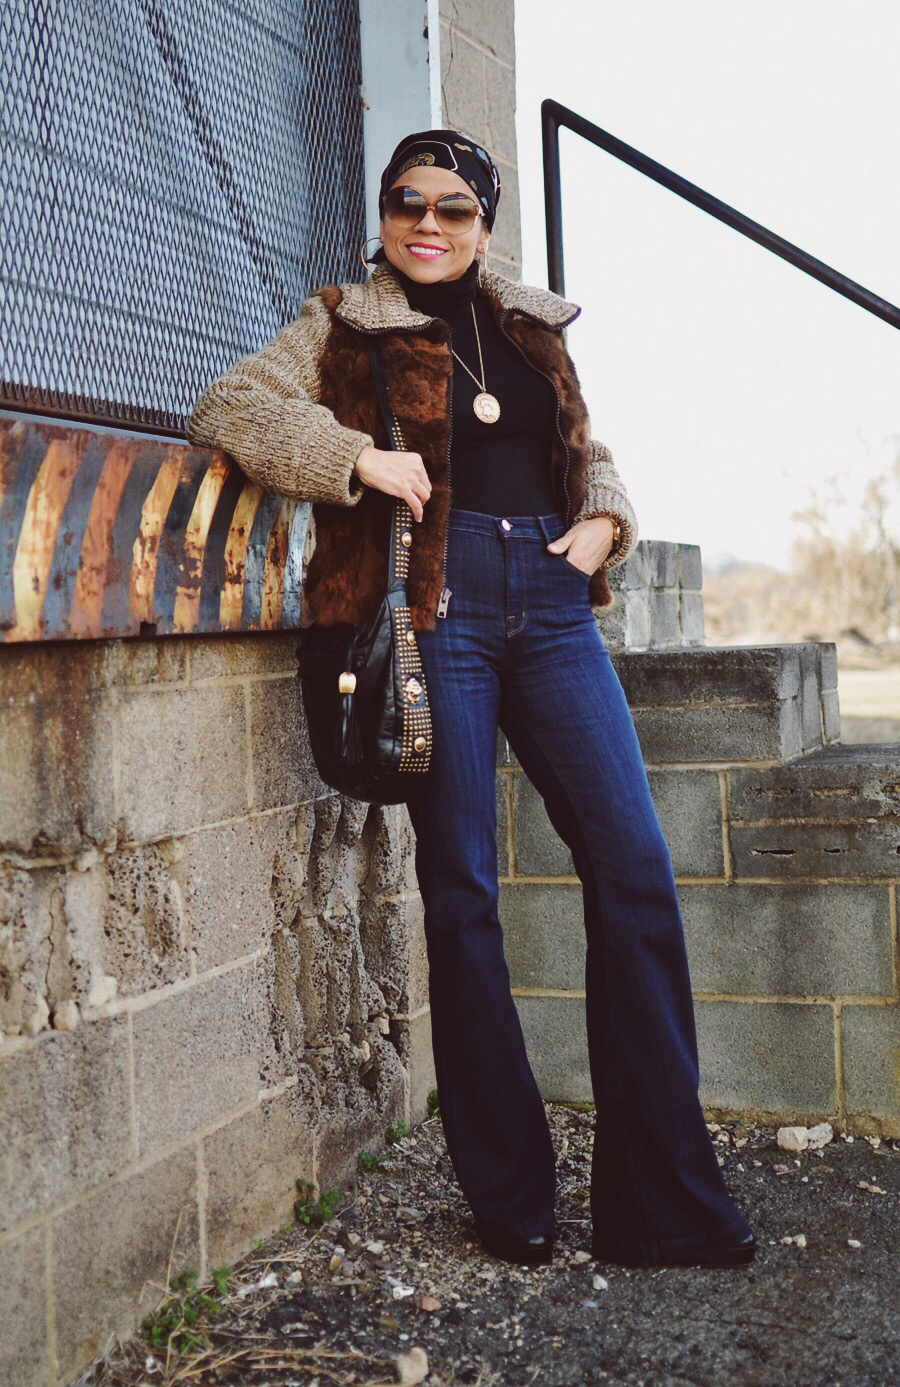 Outfit idea with bell bottom jeans